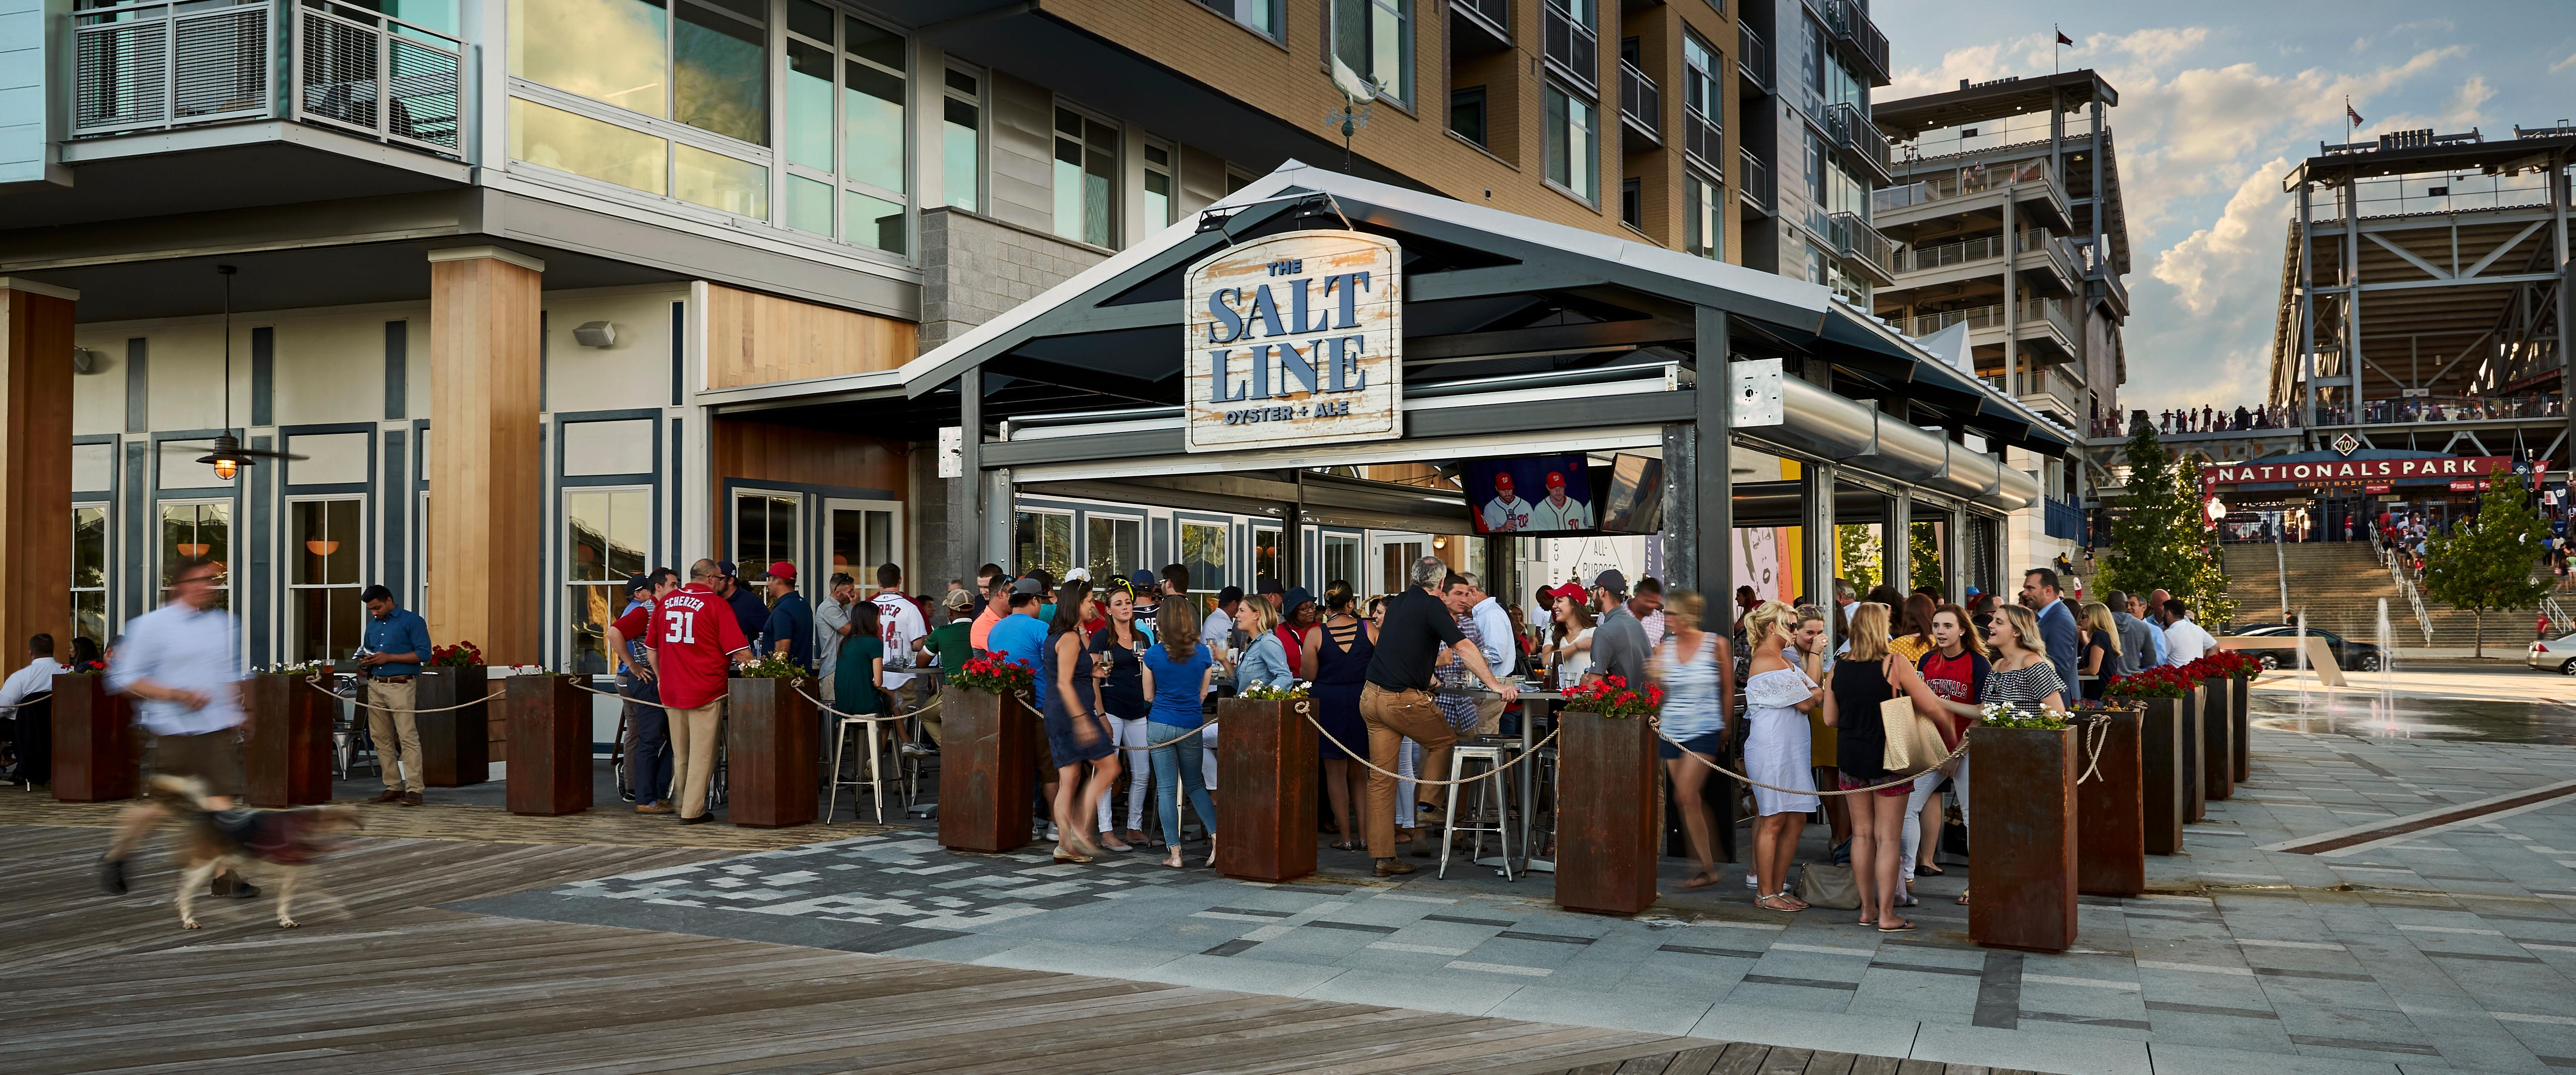 This Thursday, March 1, we can finally start pretending its spring, and that dining outside will be in the cards again, as The Salt Line will fully open its outdoor bar for the season. (Image: Greg Powers){ }